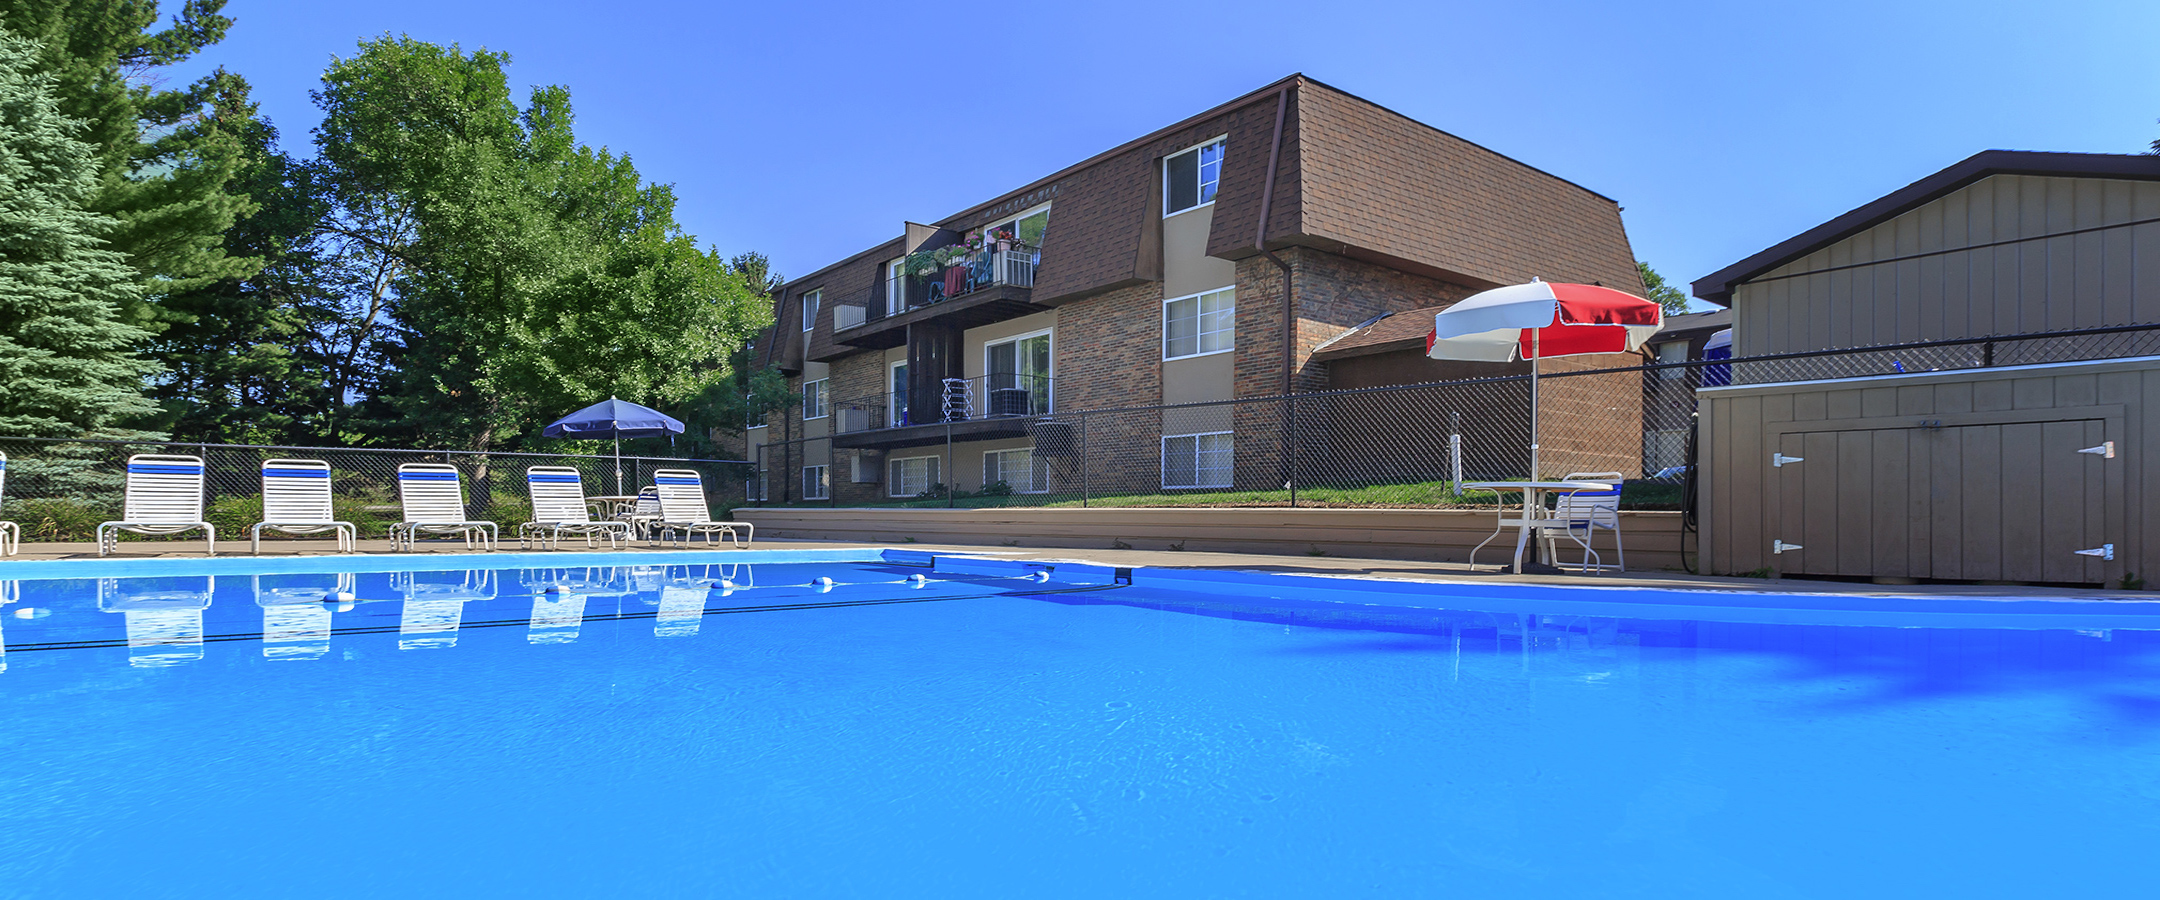 Gaslight Village Apartments Apartment Homes In Ithaca Ny